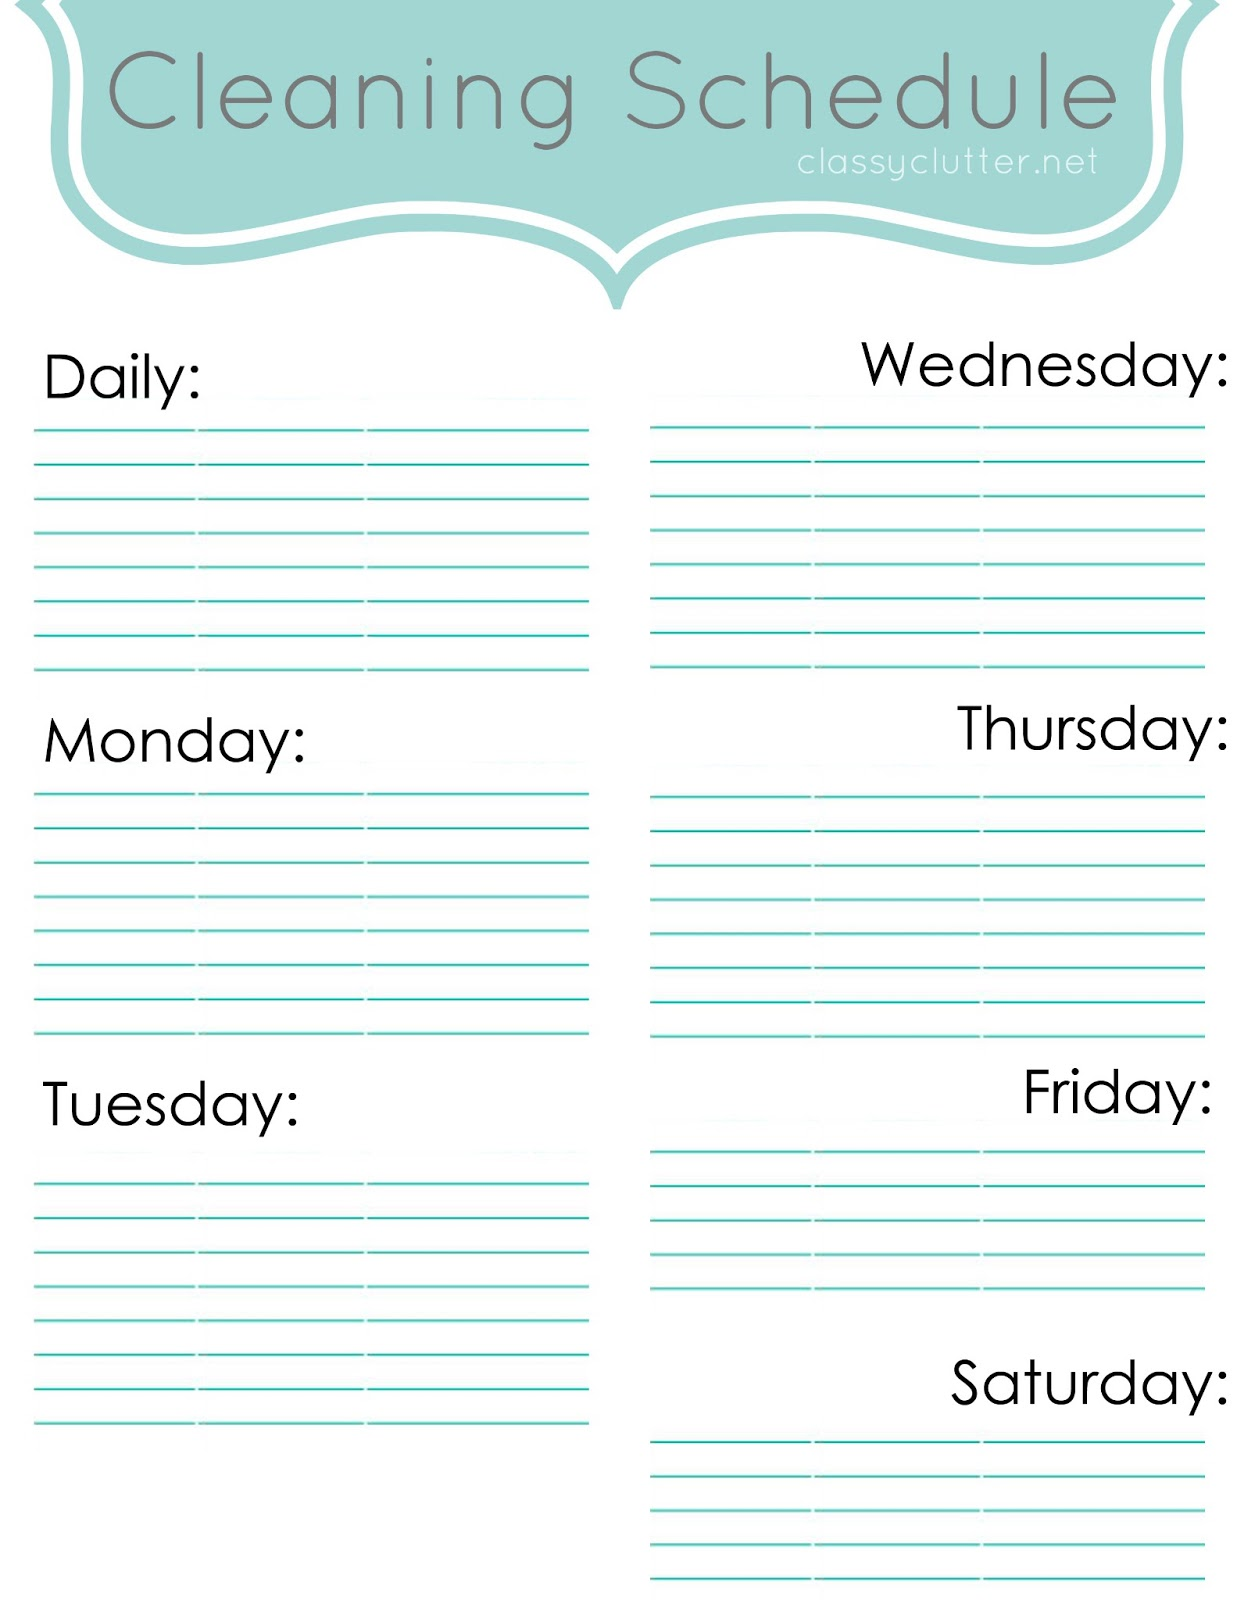 Weekly Cleaning Schedule Classy Clutter – Cleaning Schedule